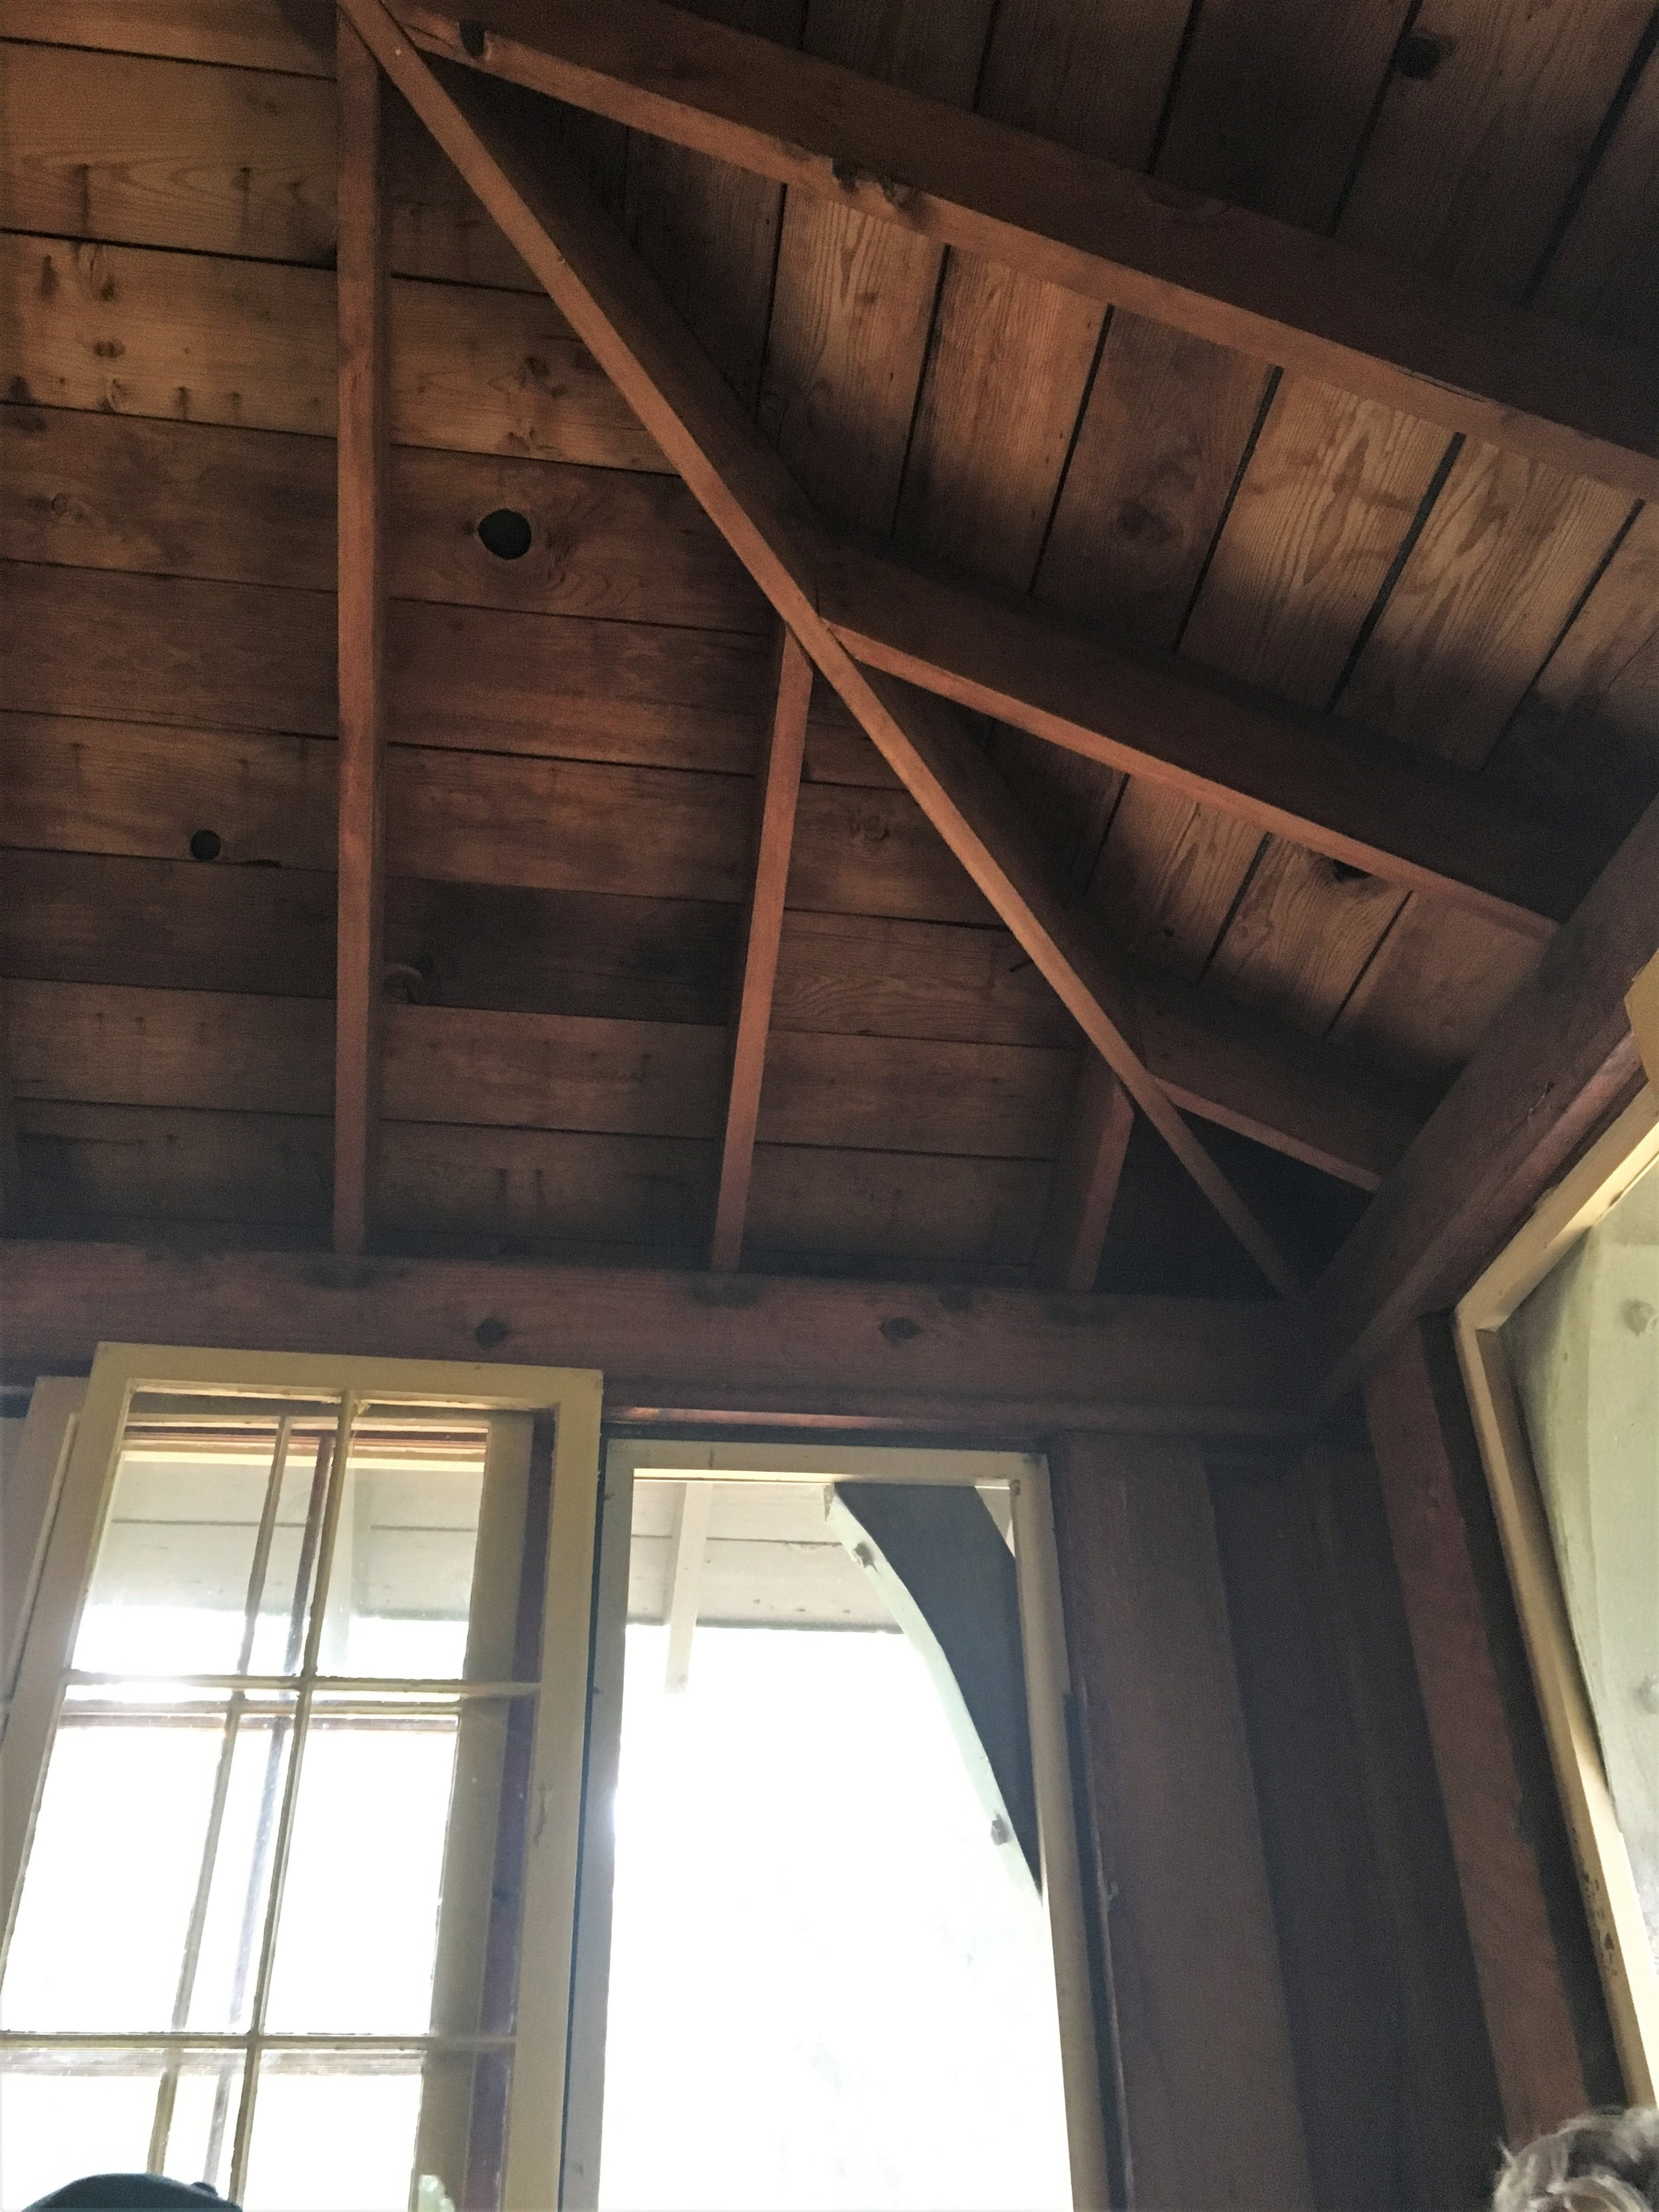 Rafters in the dining hall at St. John's Landing